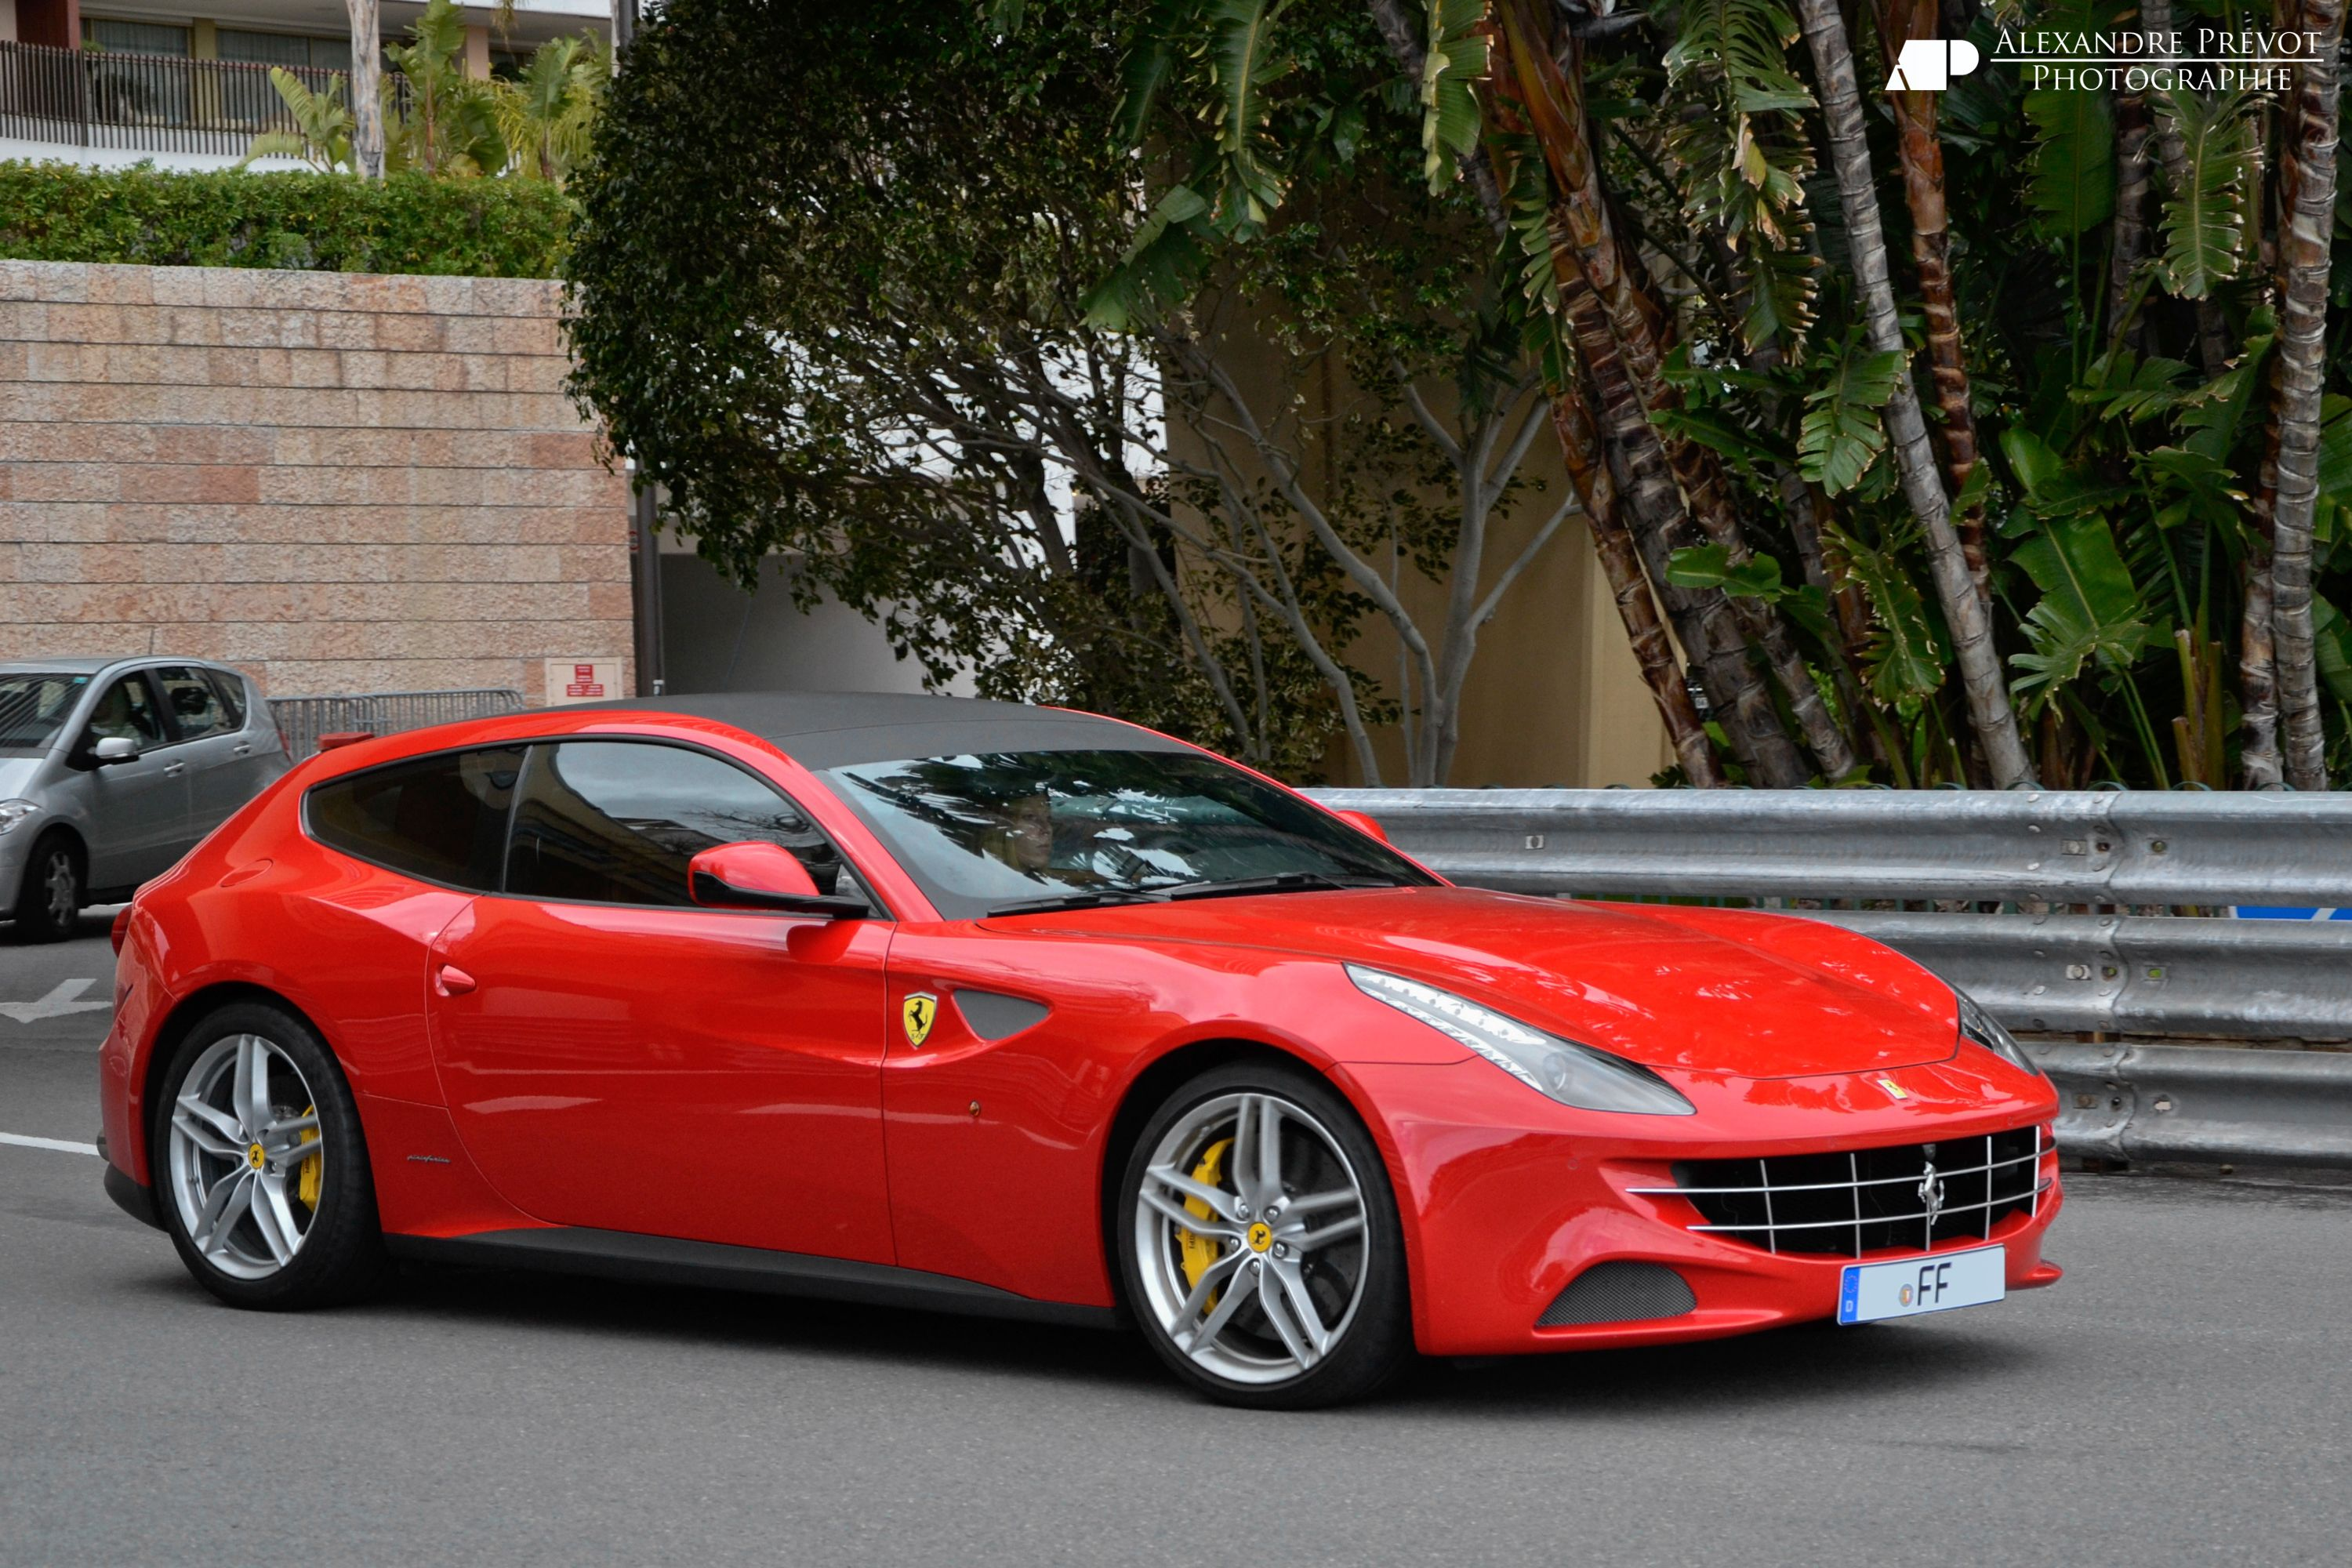 california sale ferrari photography for used flickr gallery latest price